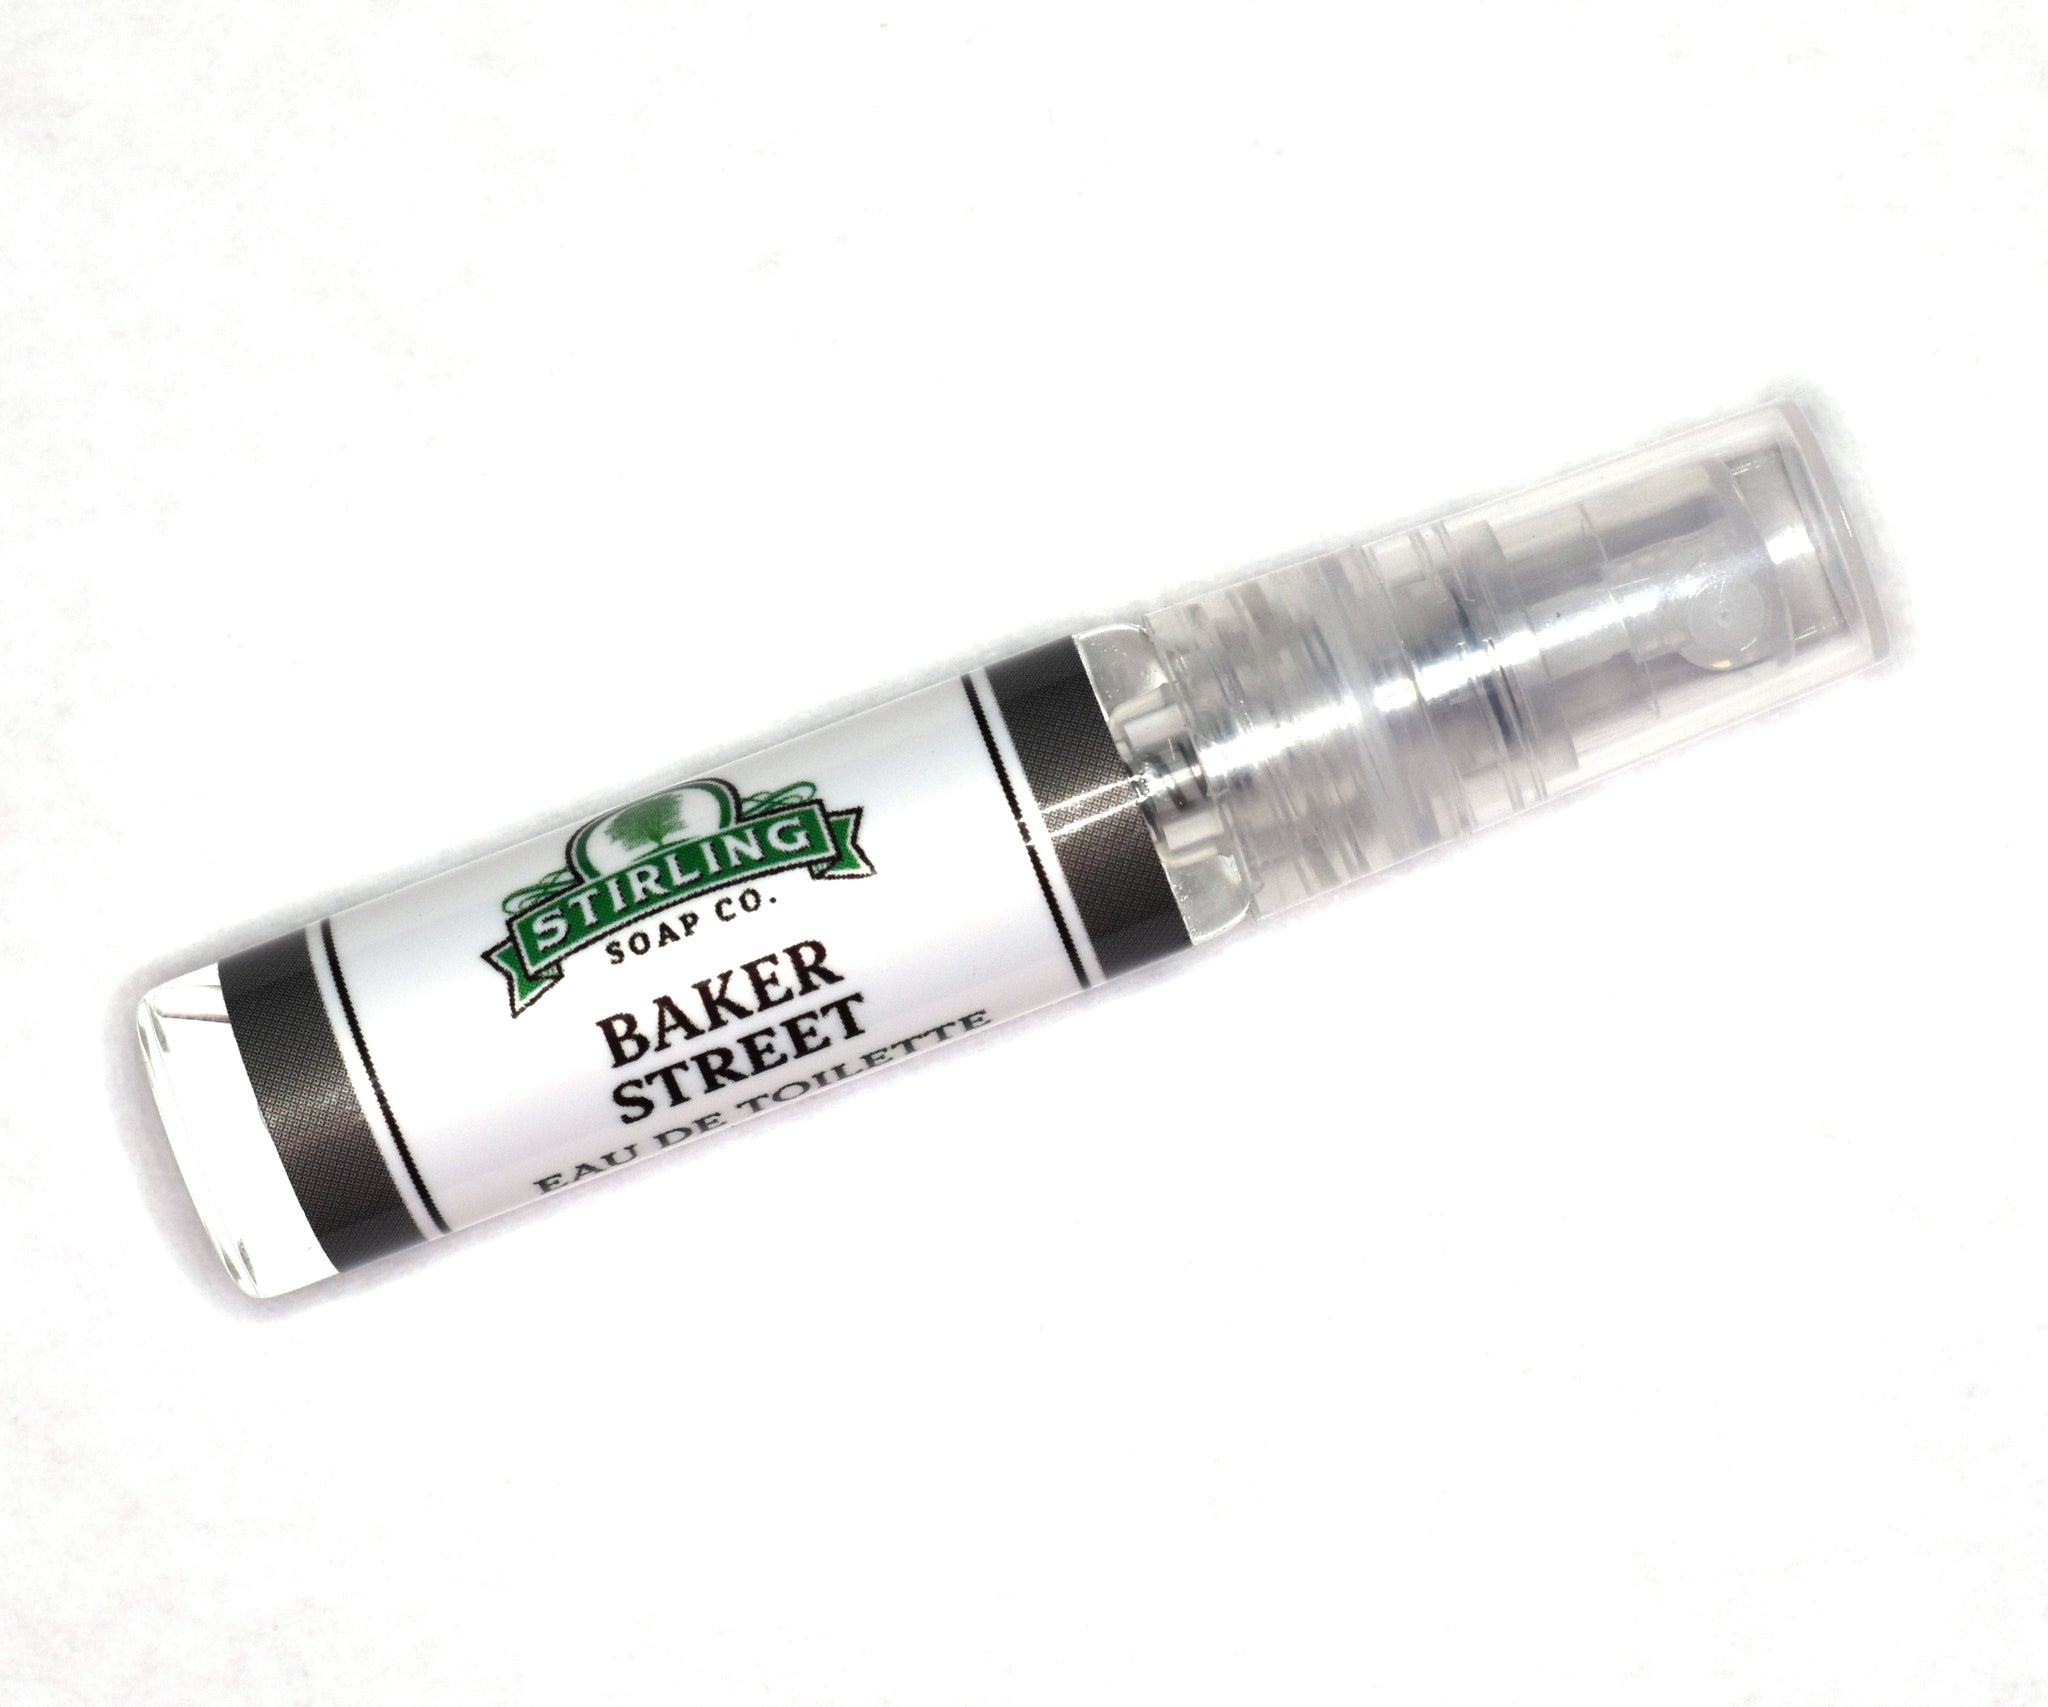 Baker Street - 5ml Eau de Toilette Sample